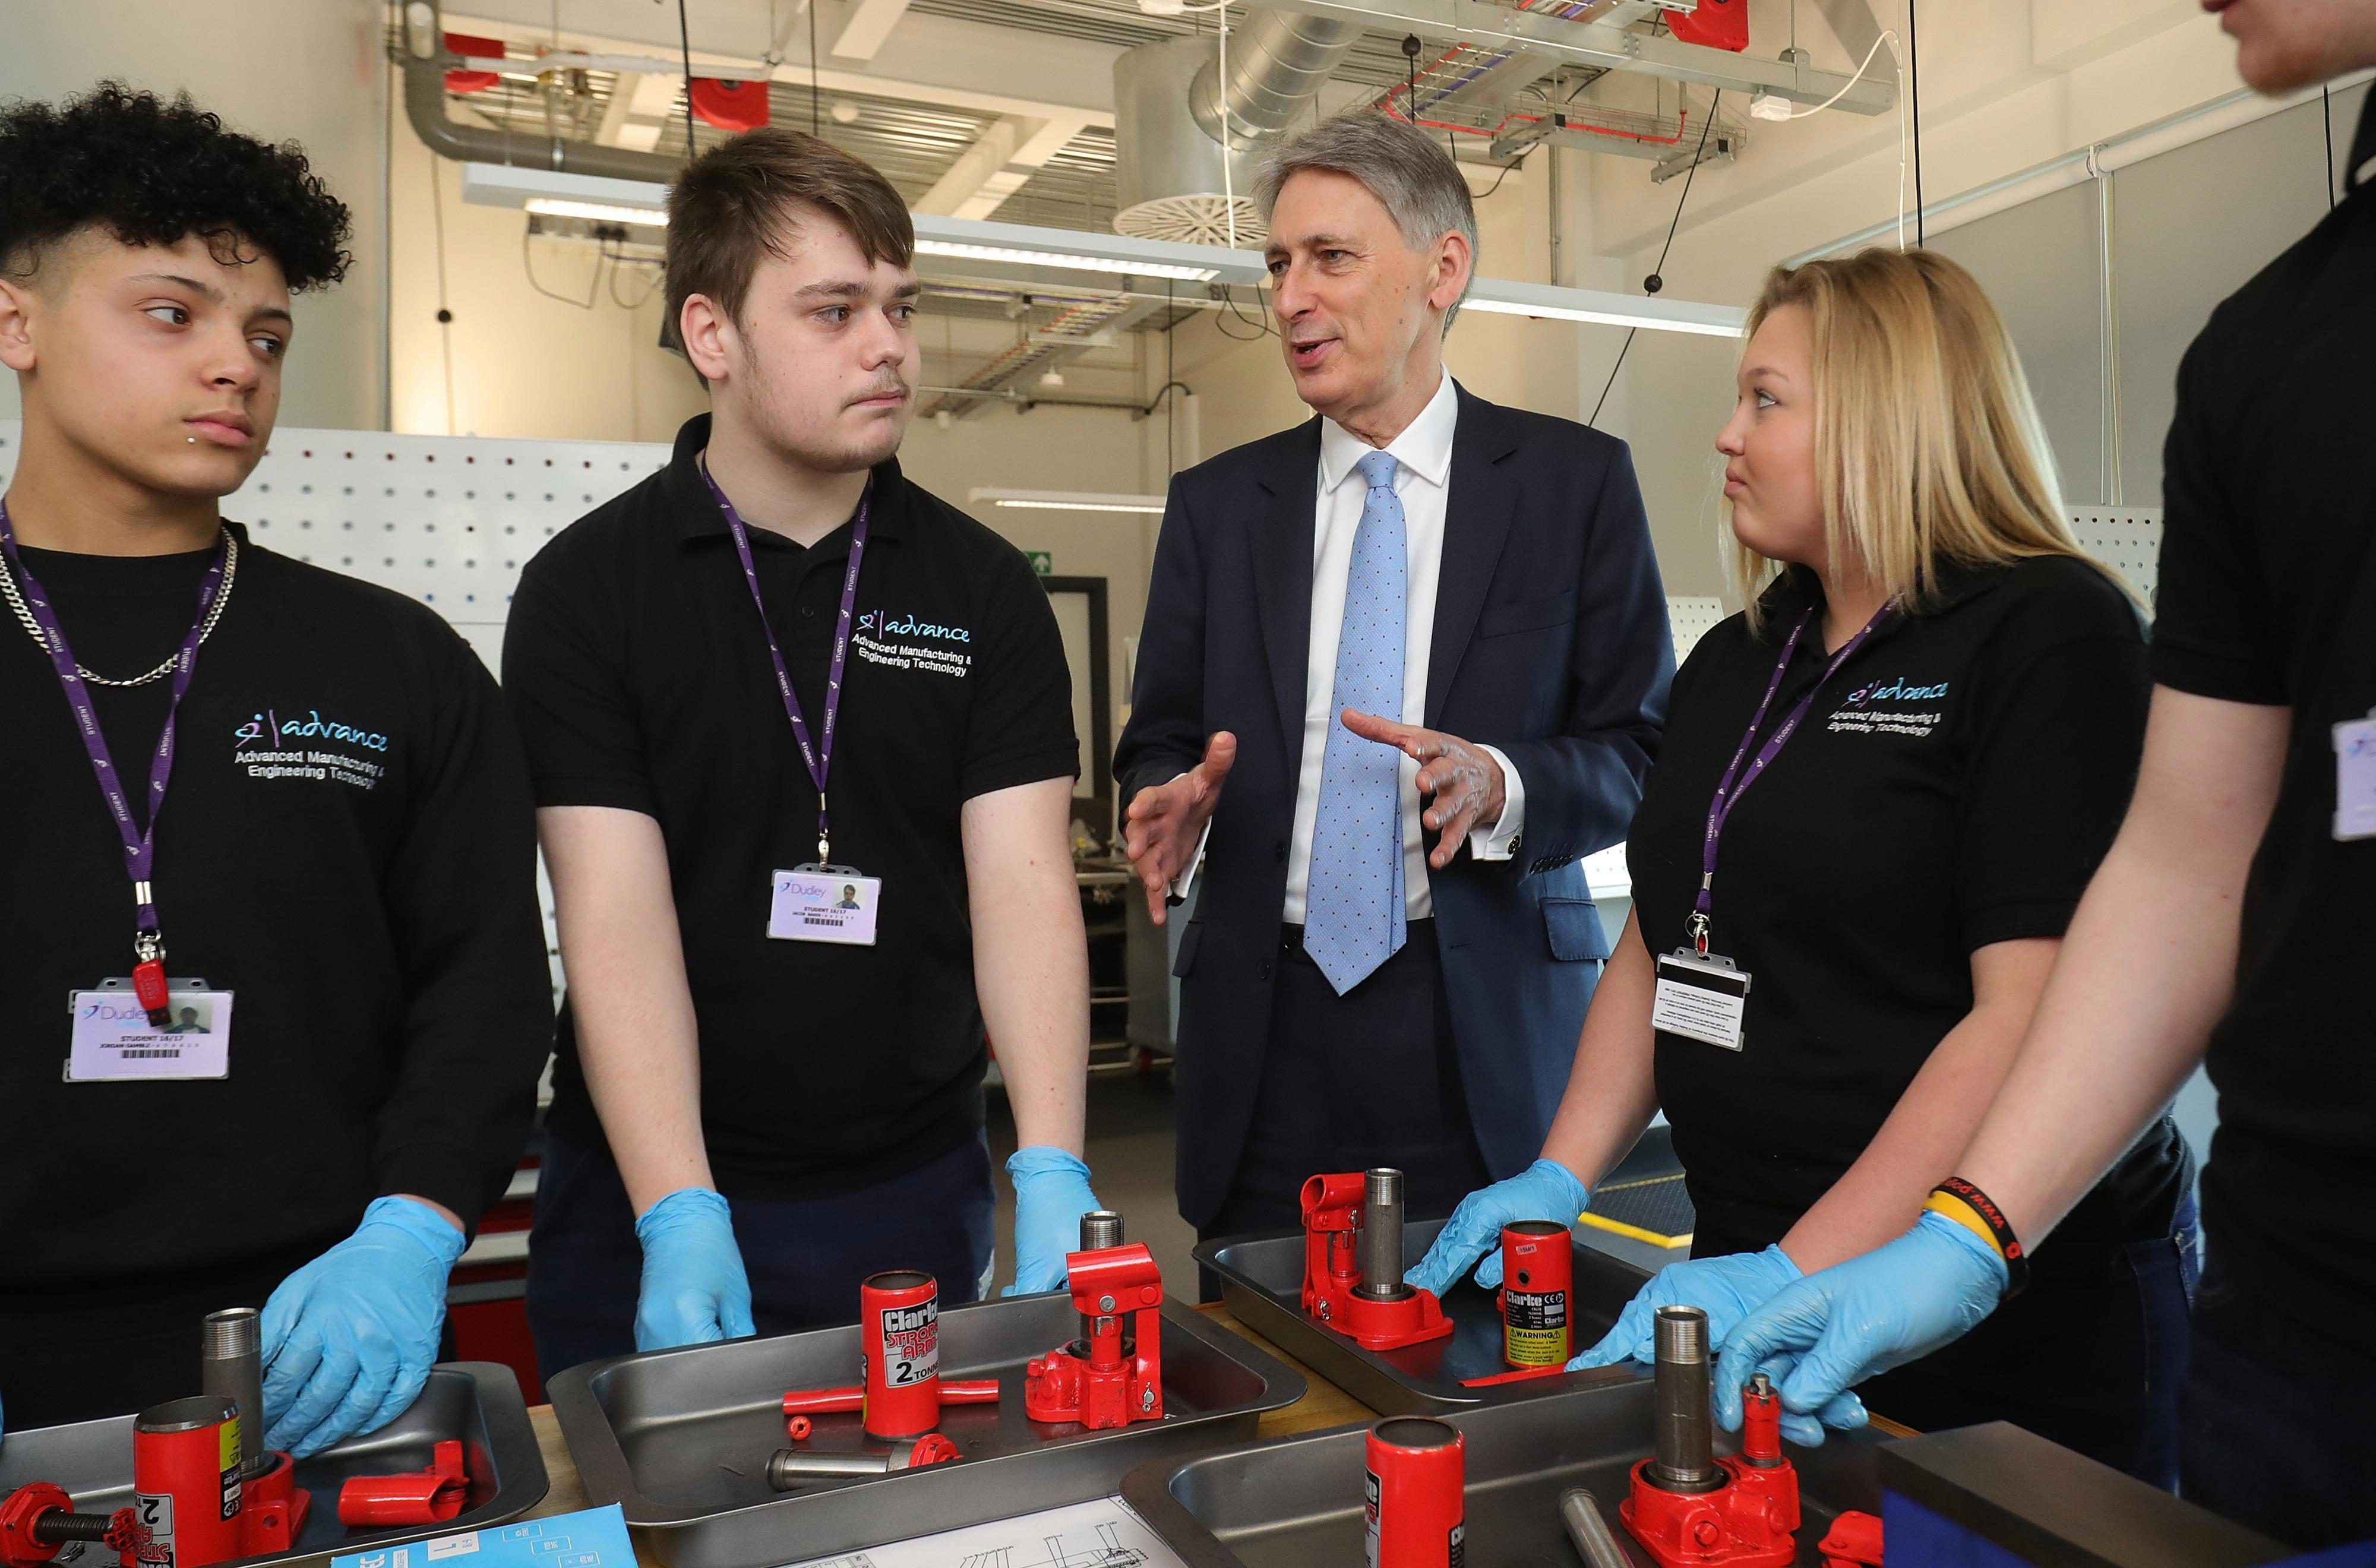 40b0c694c86223d0c60b93740944ba02 Chancellor Philip Hammond reveals he will give a huge boost to hard-up youngsters and 'Generation Rent' in his next Budget